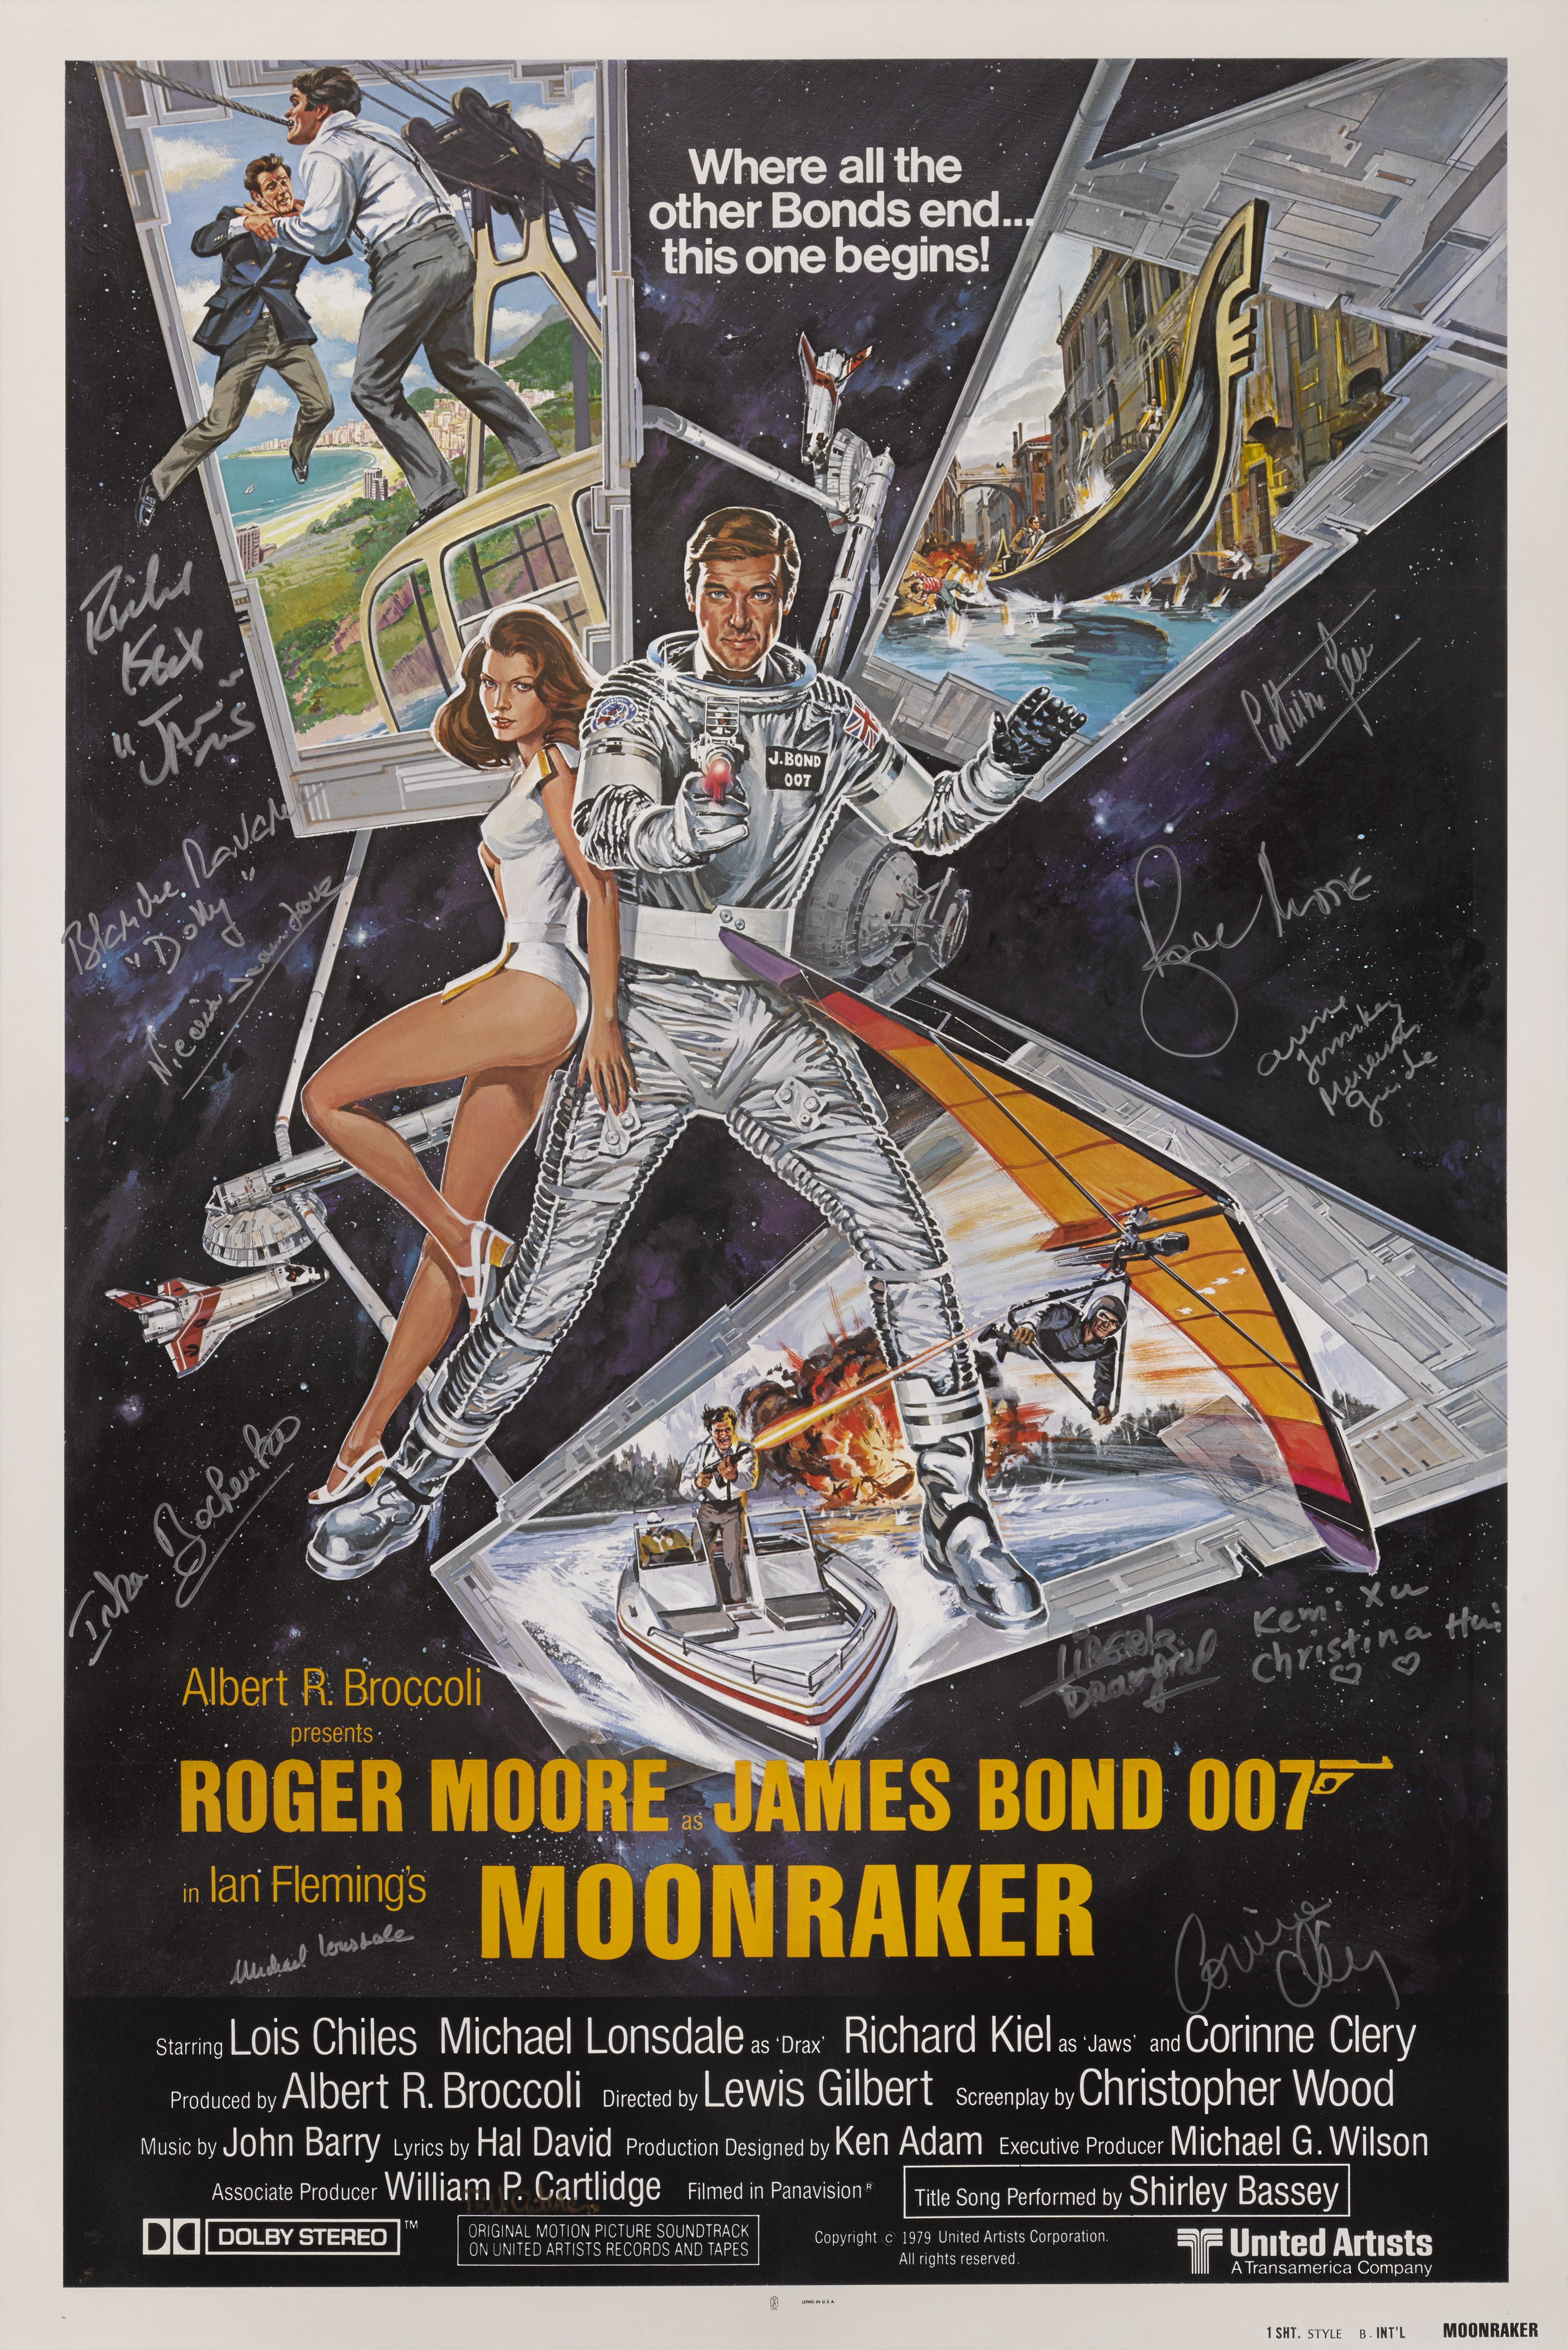 MOONRAKER (1979) POSTER, US, INTERNATIONAL STYLE B, SIGNED BY  ROGER MOORE (PLAYED 007) ET AL.